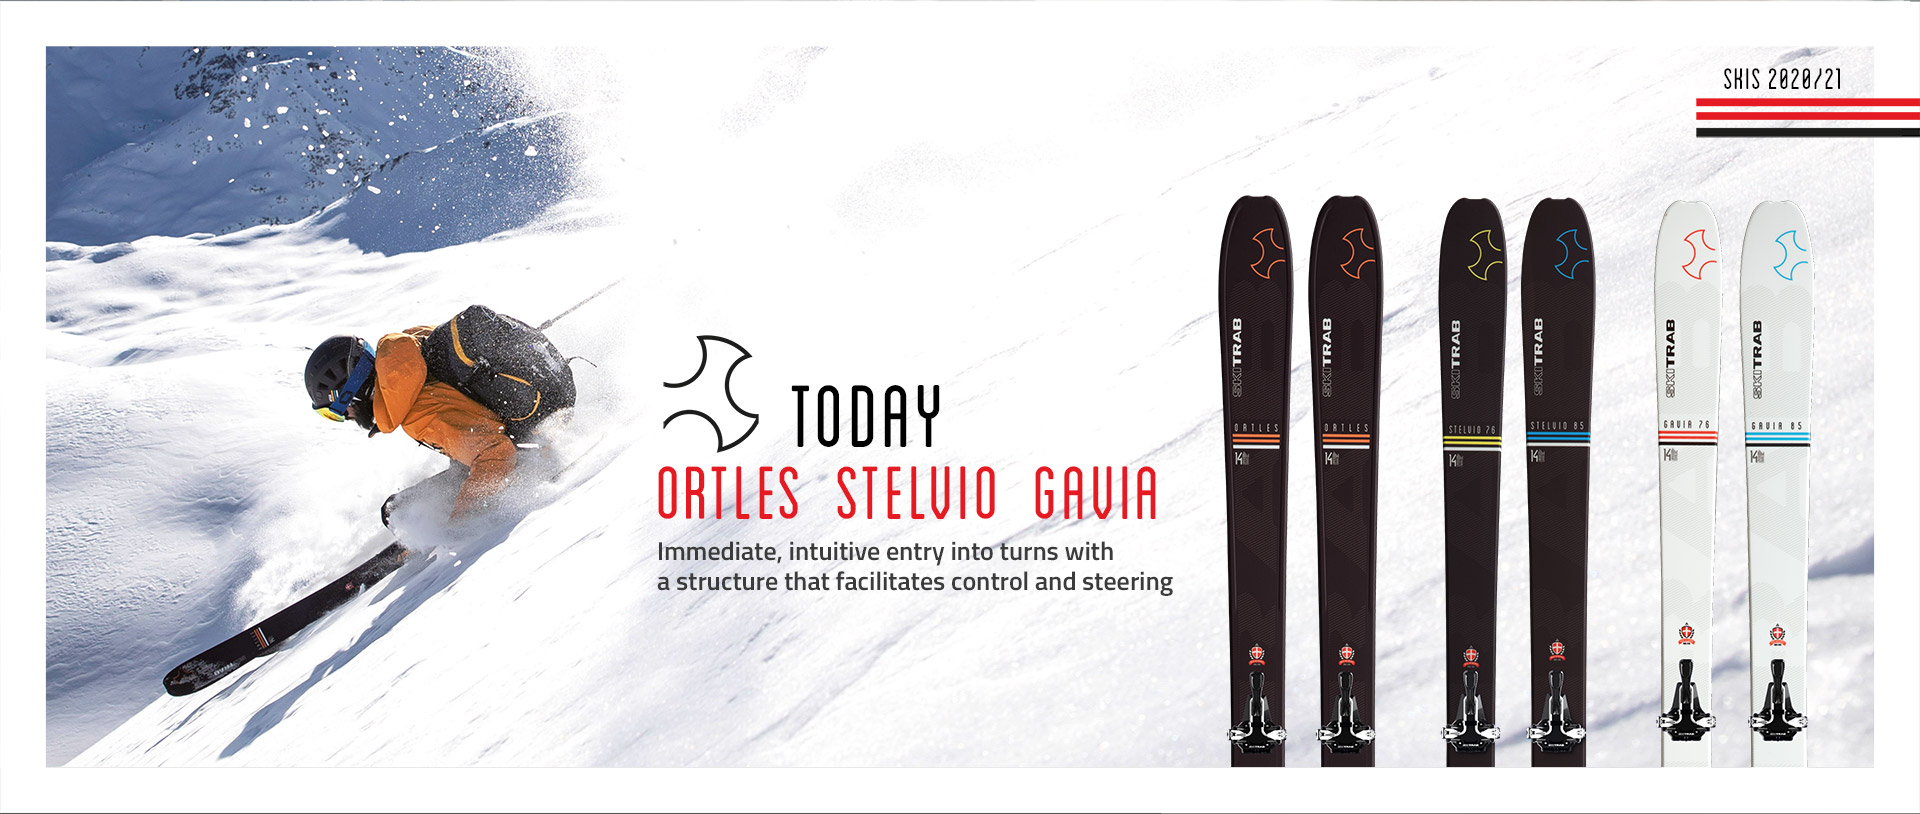 Ortles-Stelvio-Gavia_Collection_com